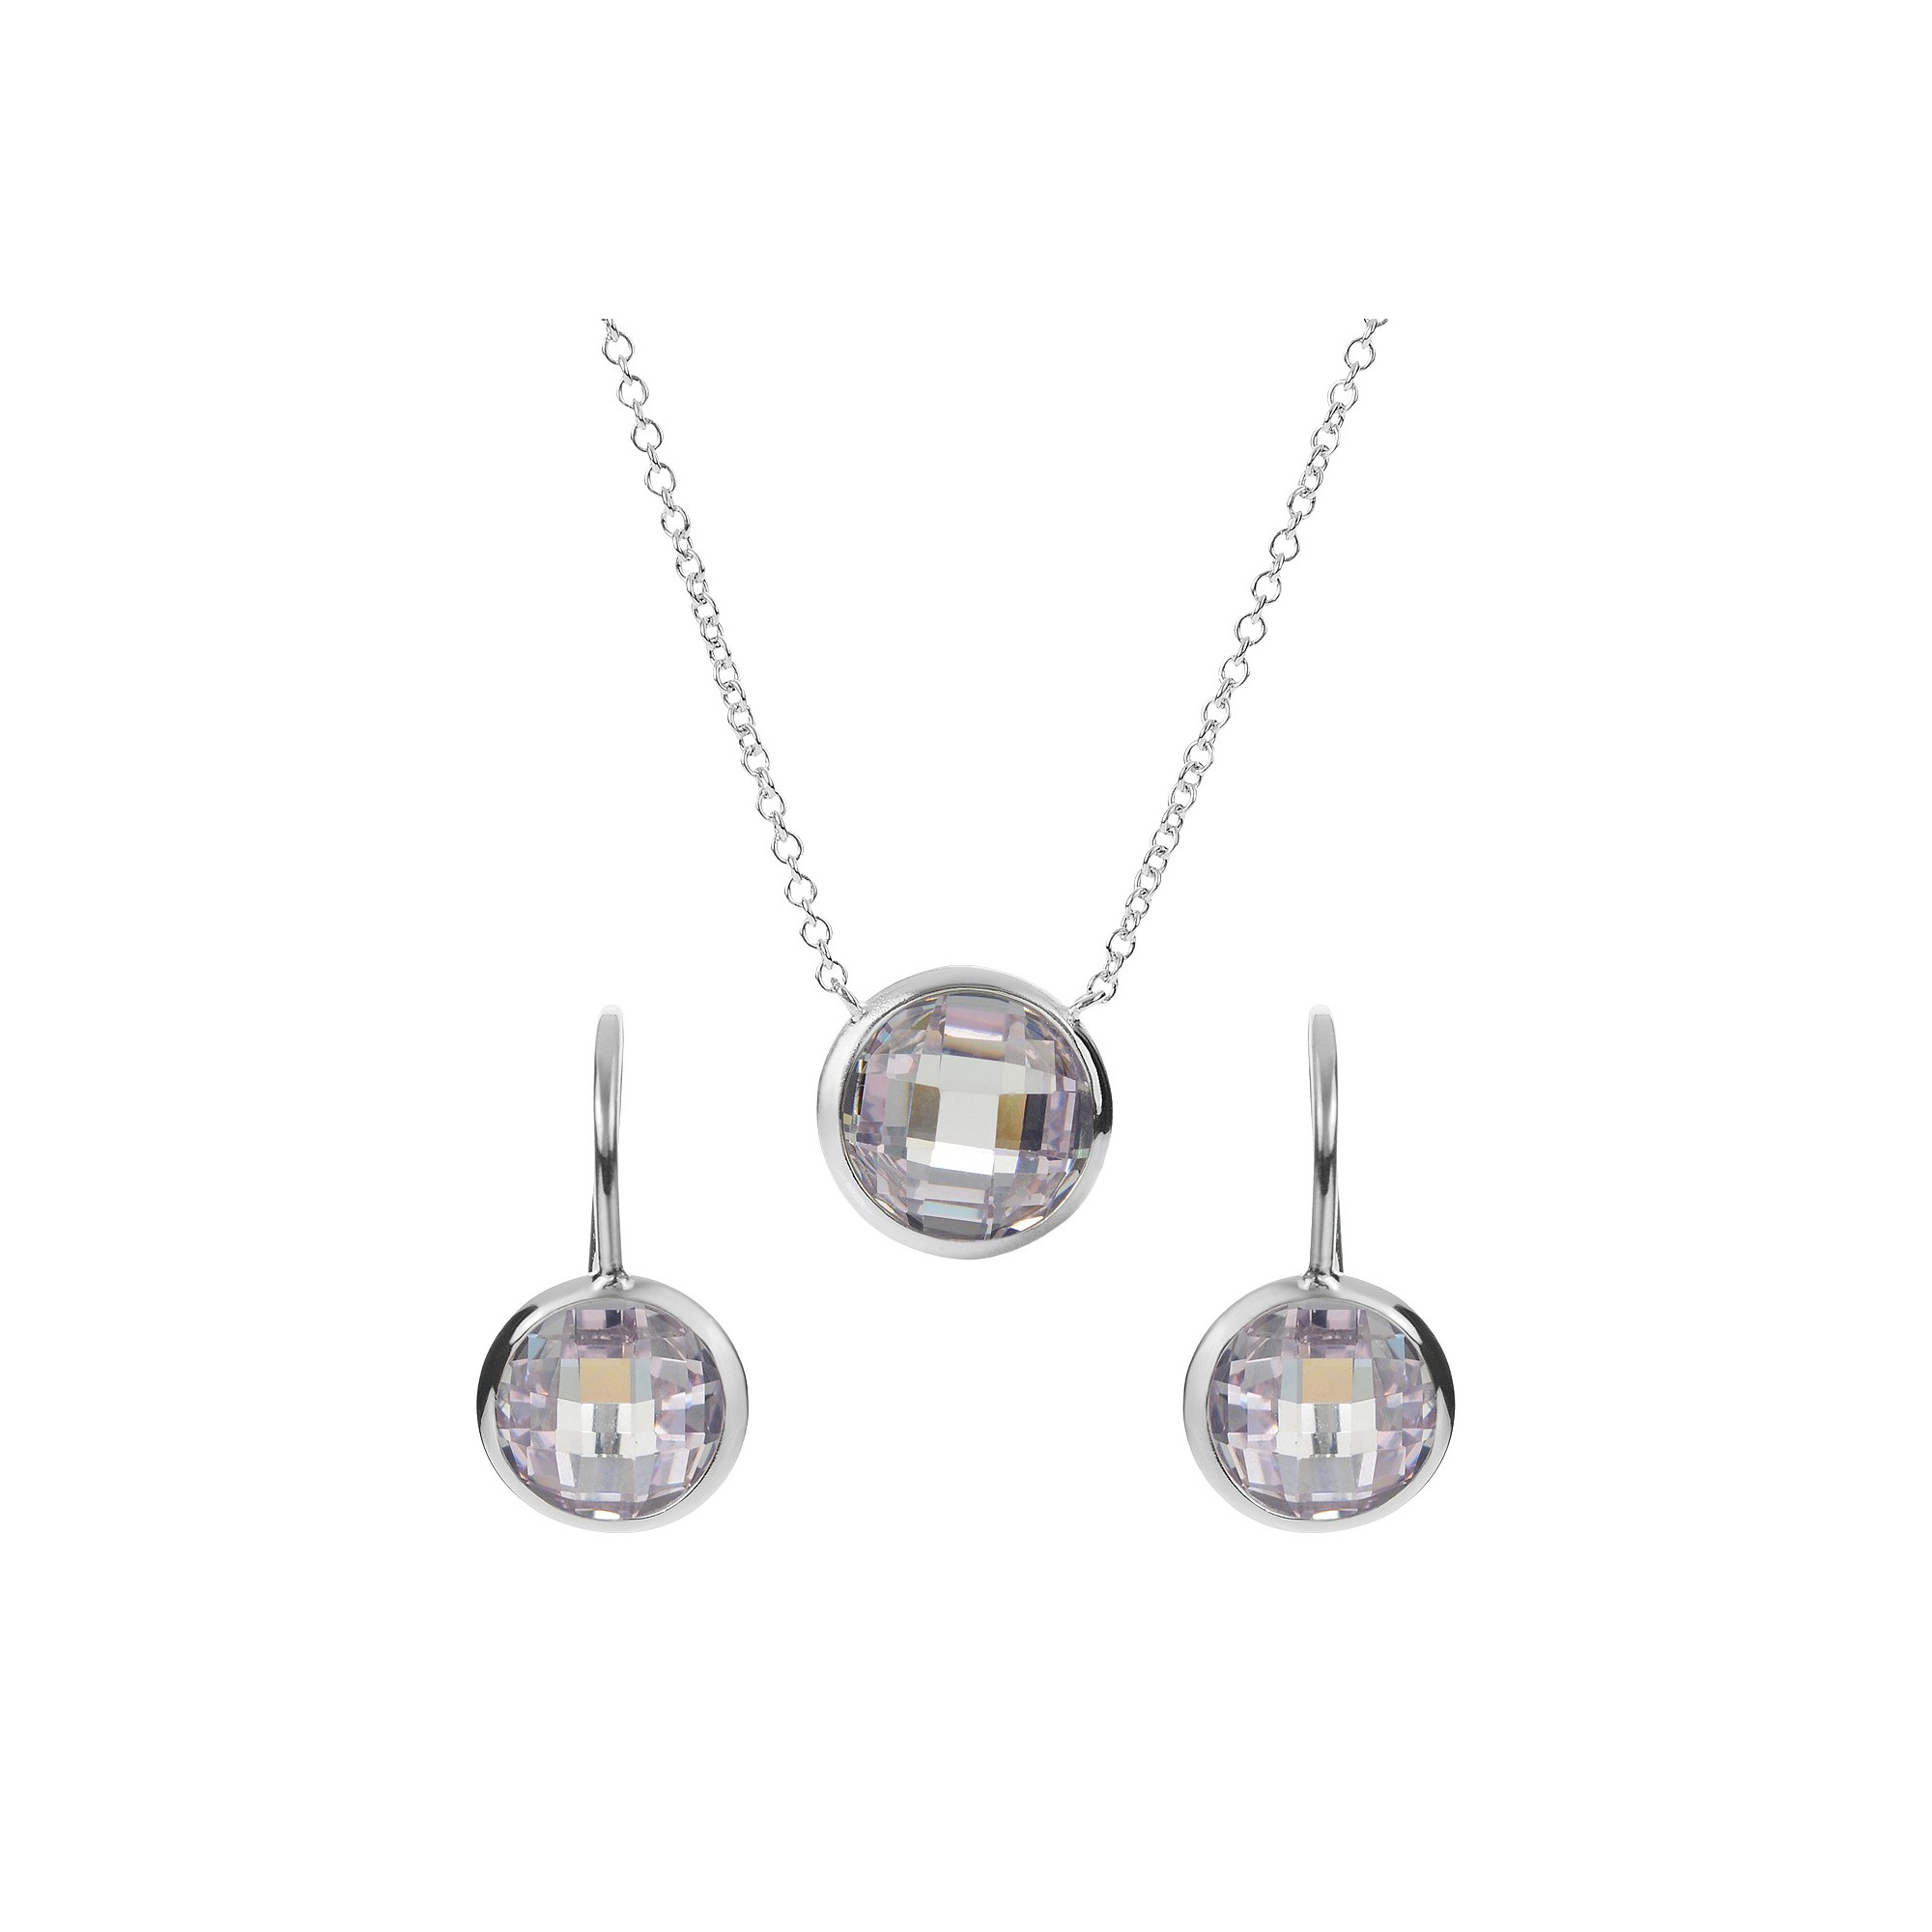 Tressa collection sterling silver cubic zirconia earrings and